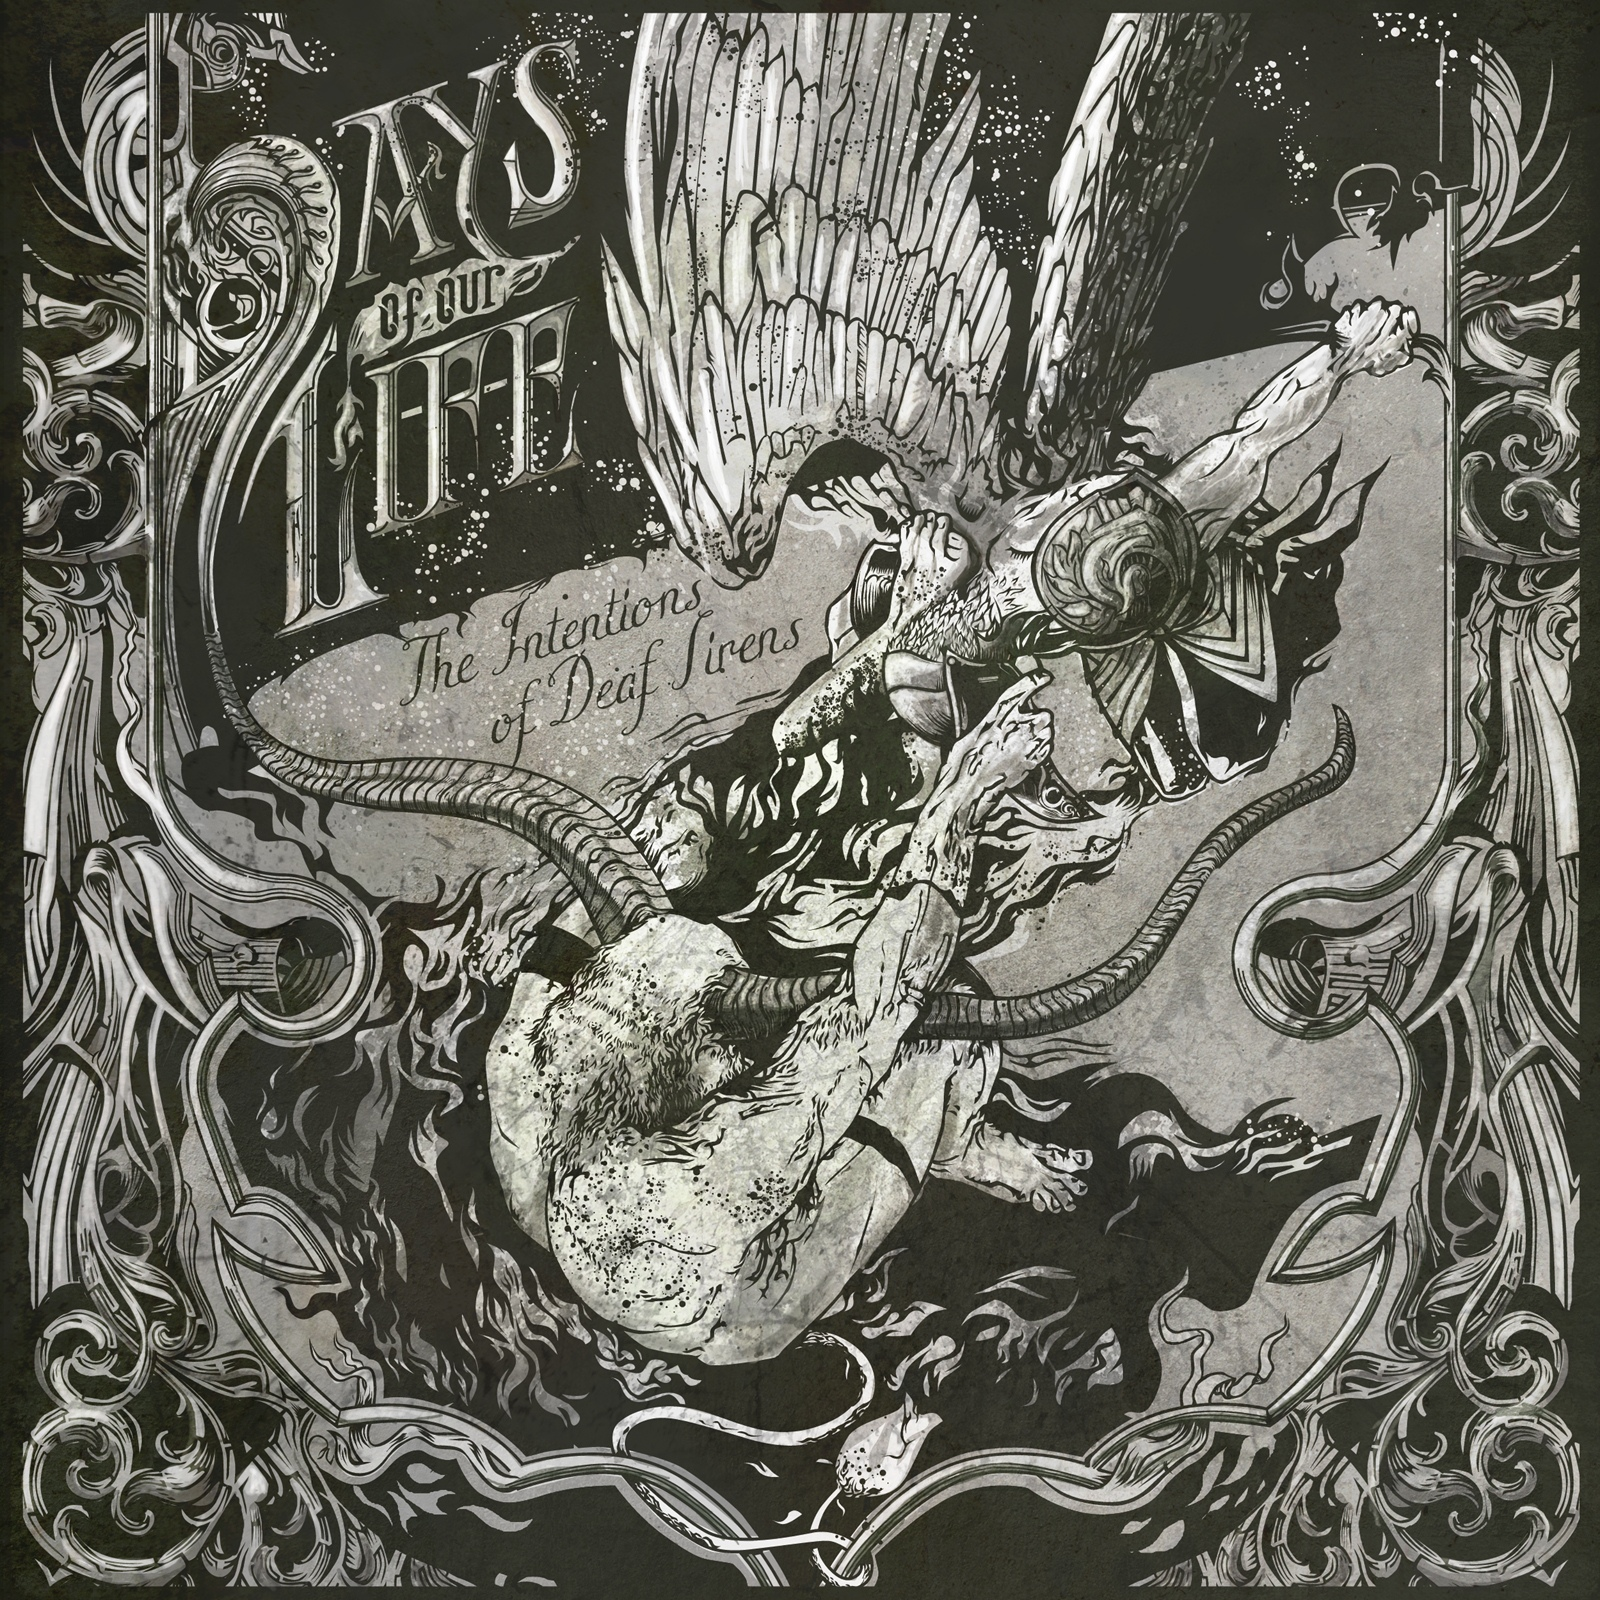 Days Of Our Life - The Intentions of Deaf Sirens [EP] (2012)